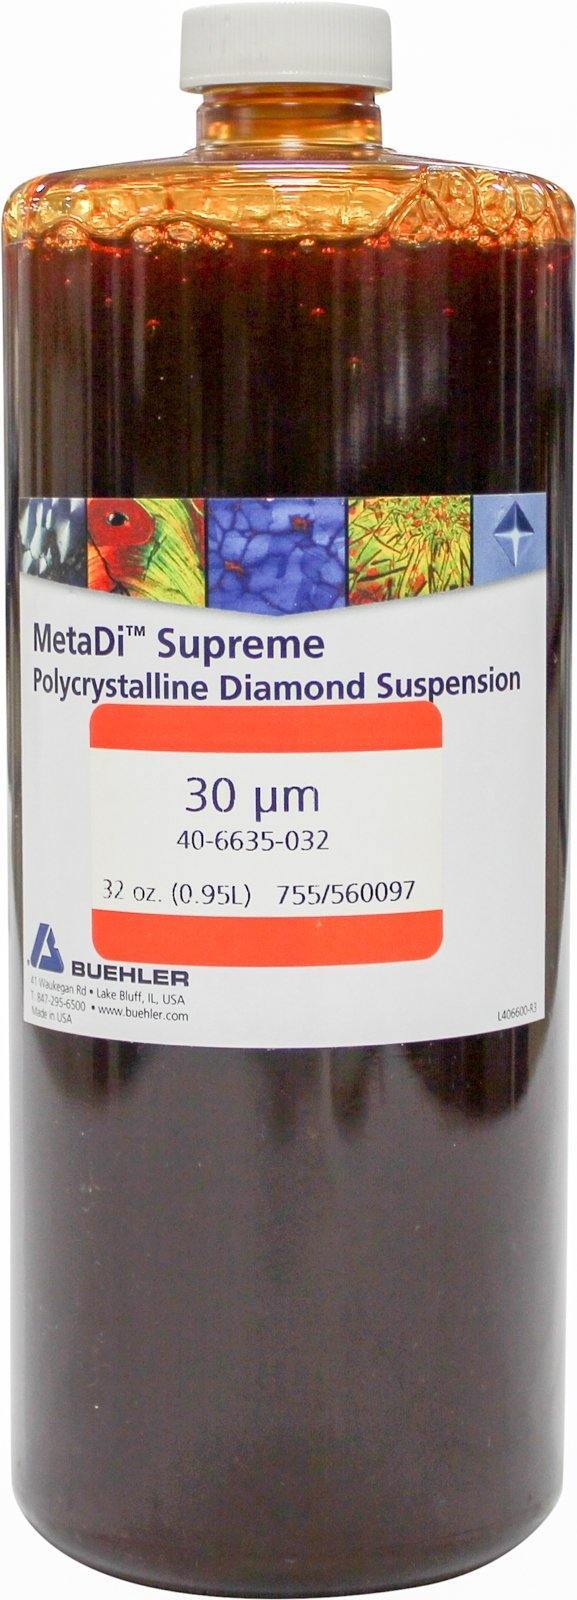 MetaDi Supreme, Poly, 30 µm 32oz-p - JH Technologies